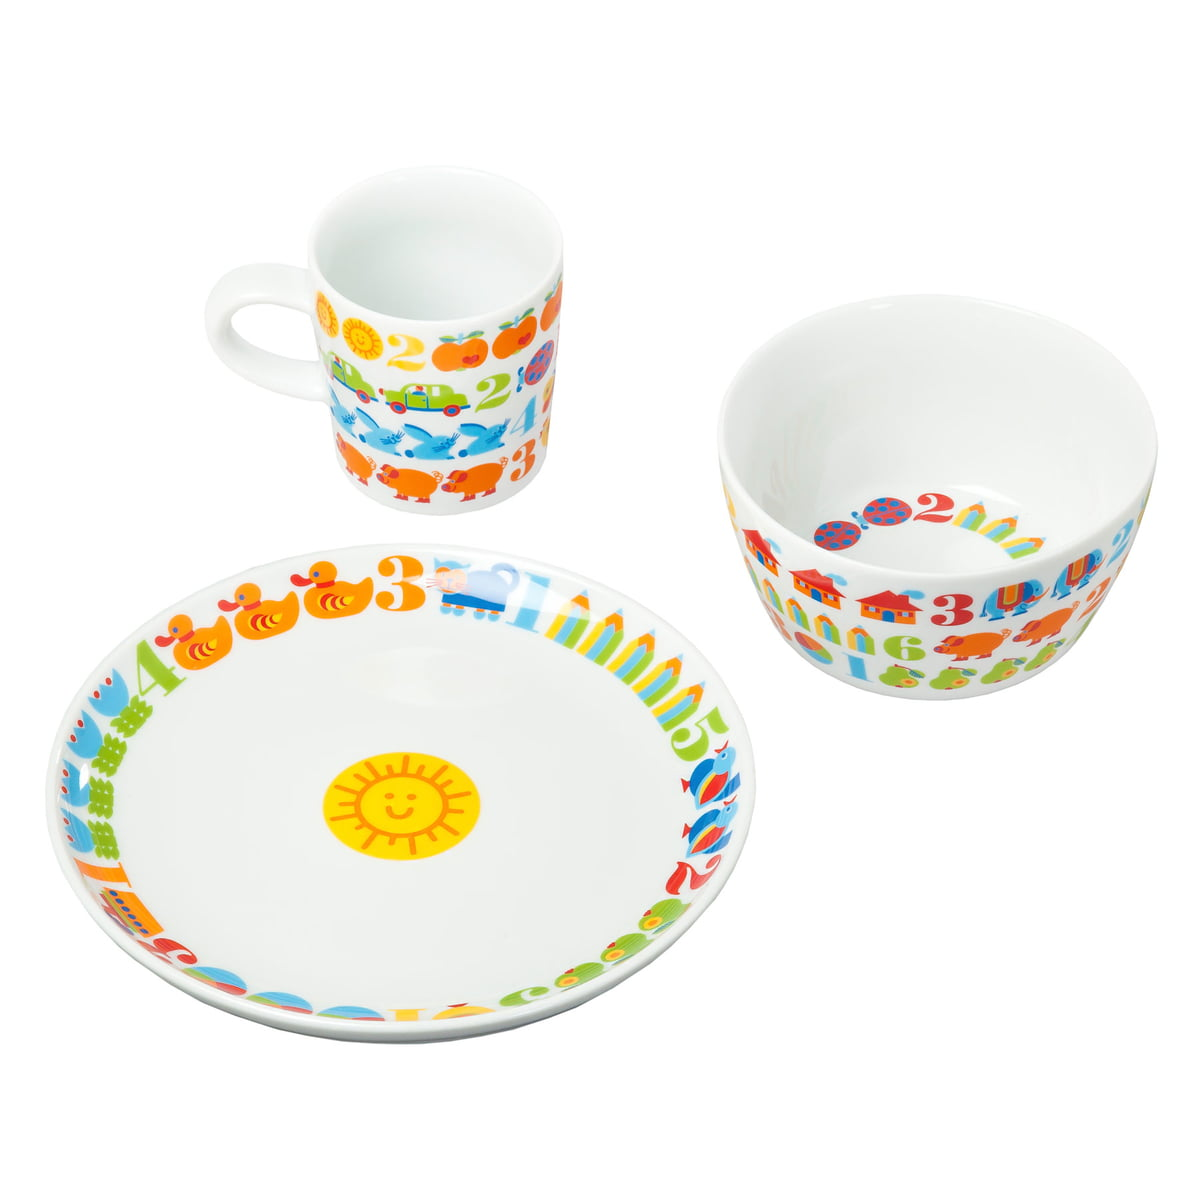 byGraziela - 123 Childrenu0027s Dishes  sc 1 st  Connox & Childrenu0027s Dishes 123 from byGraziela in the shop